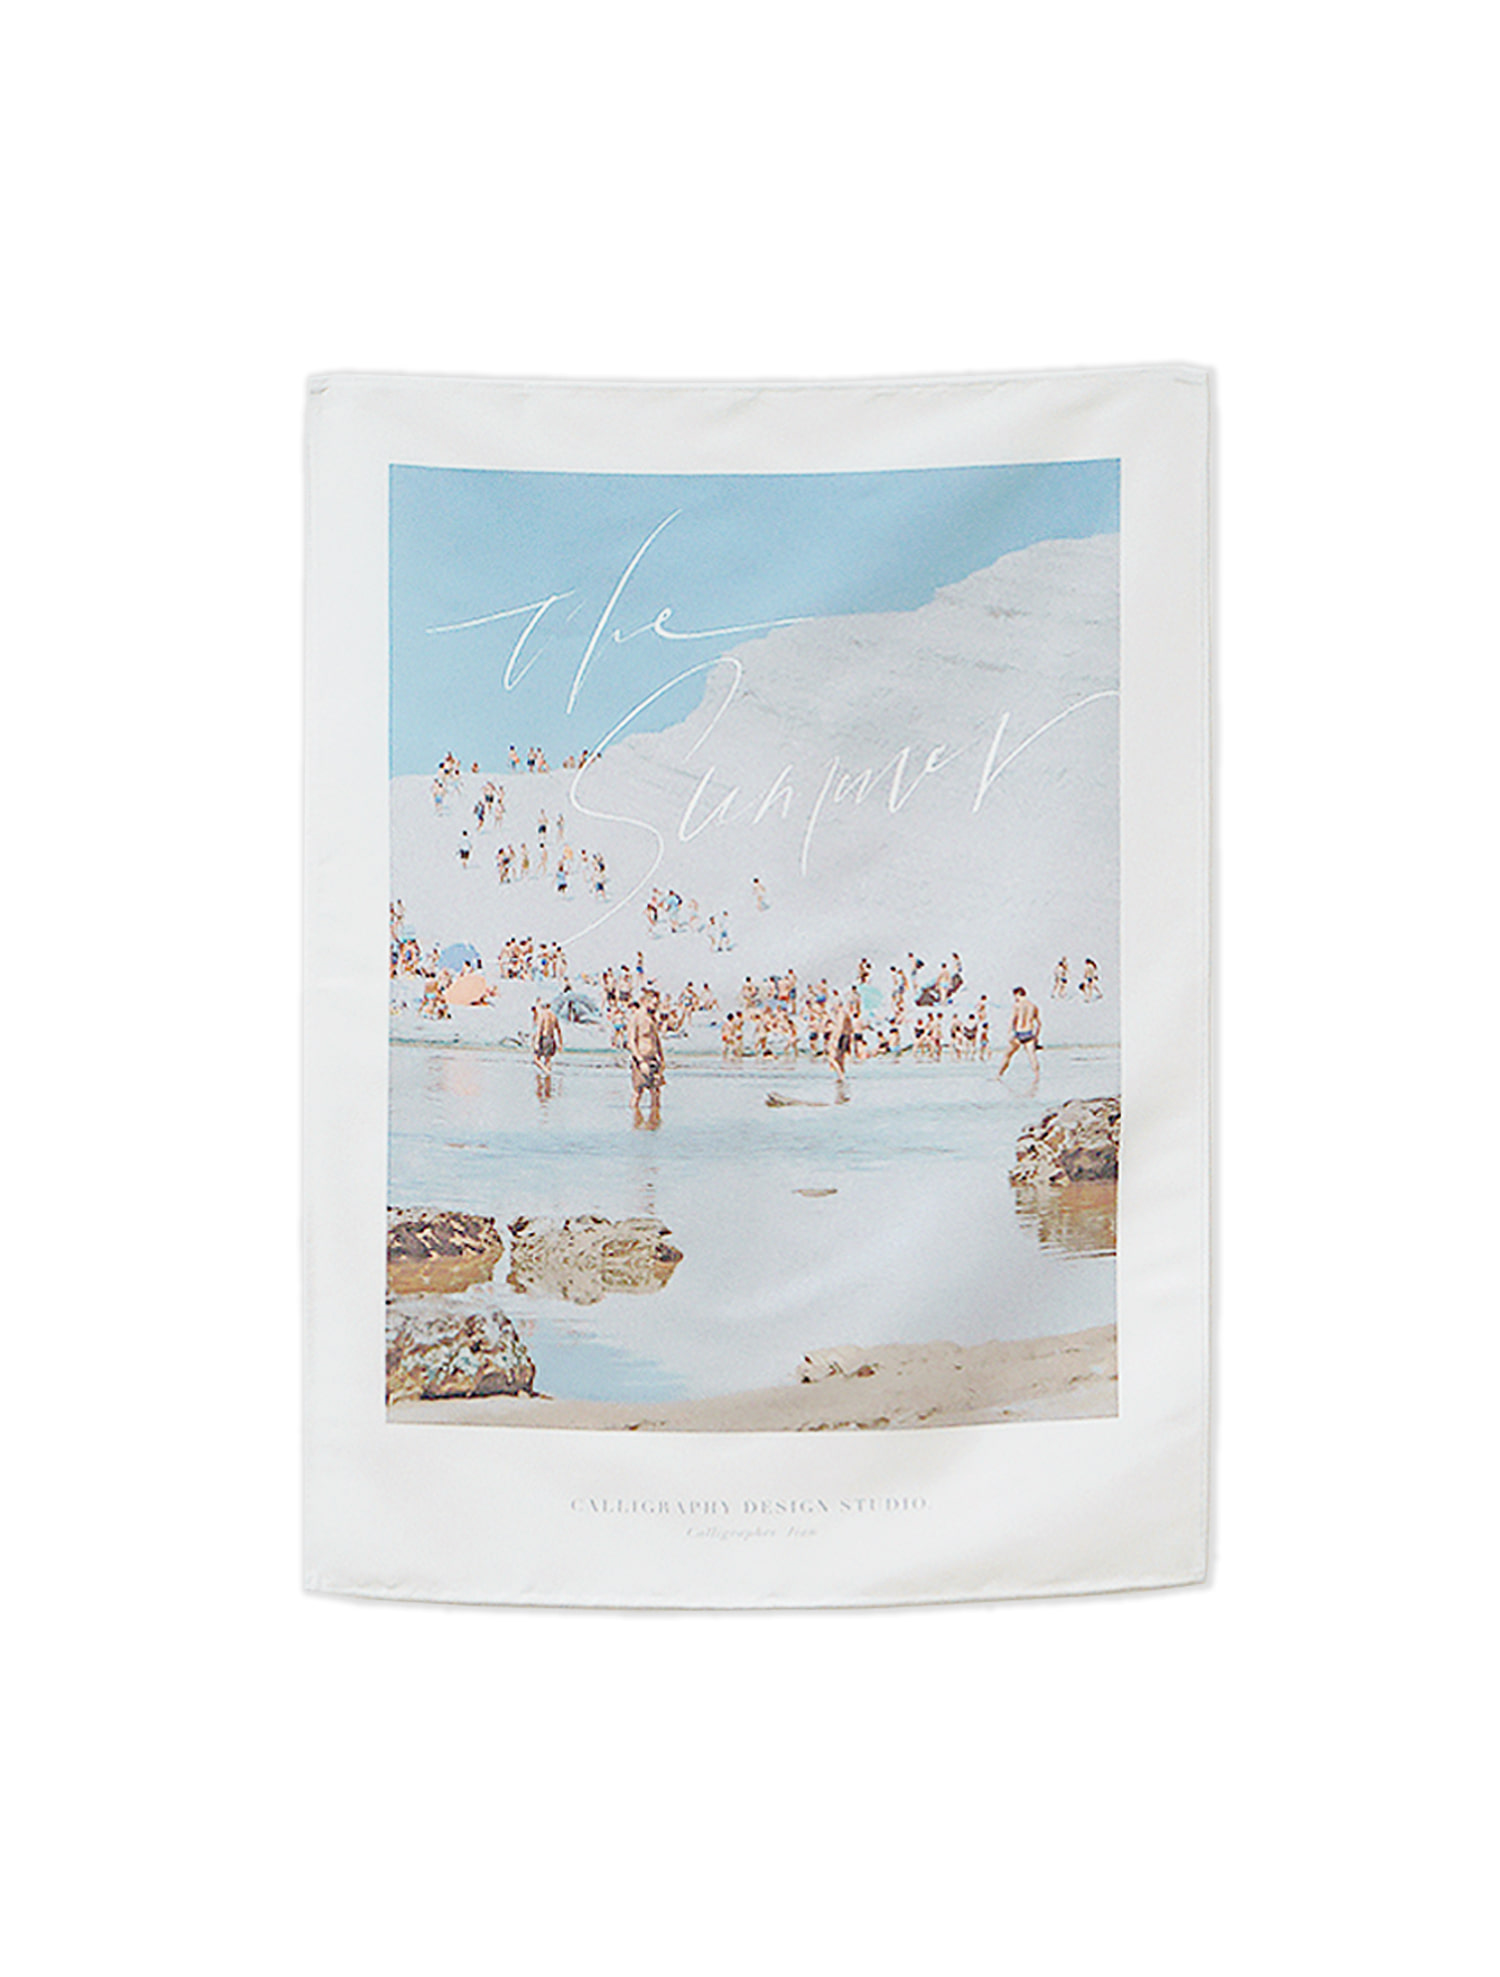 Calligraphy Fabric Poster - The Summer